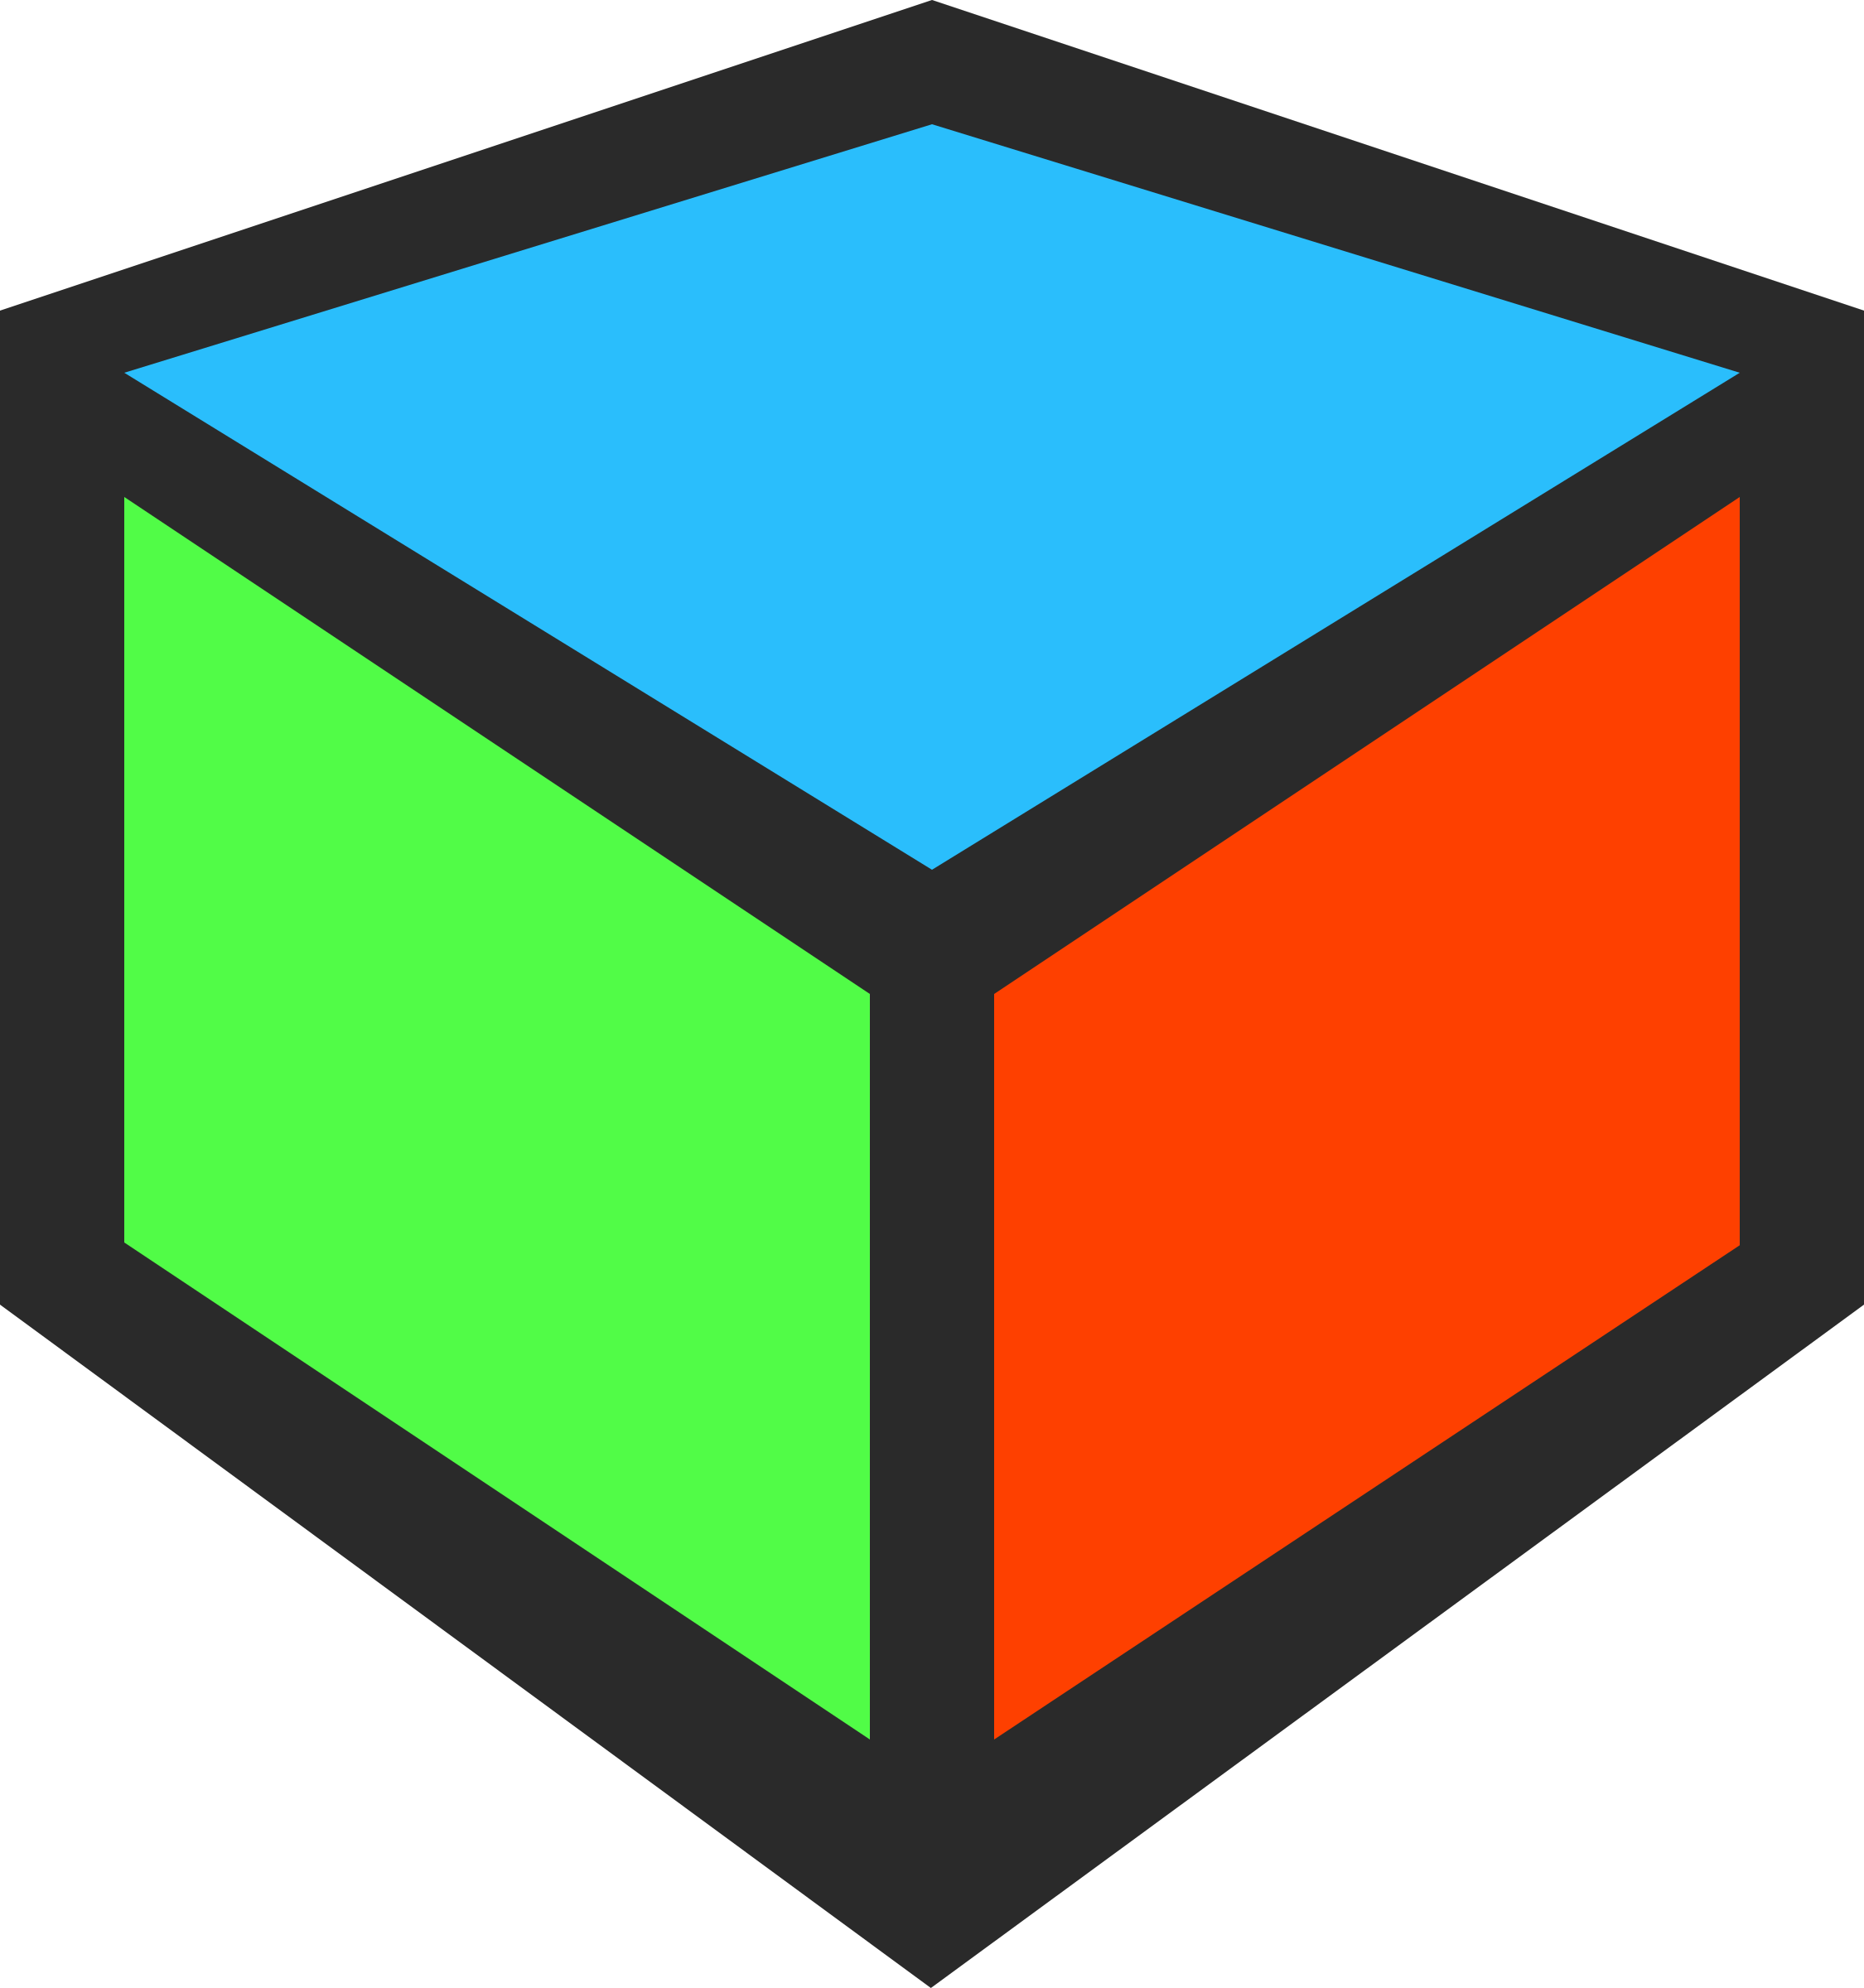 3d cube png. D icon icons